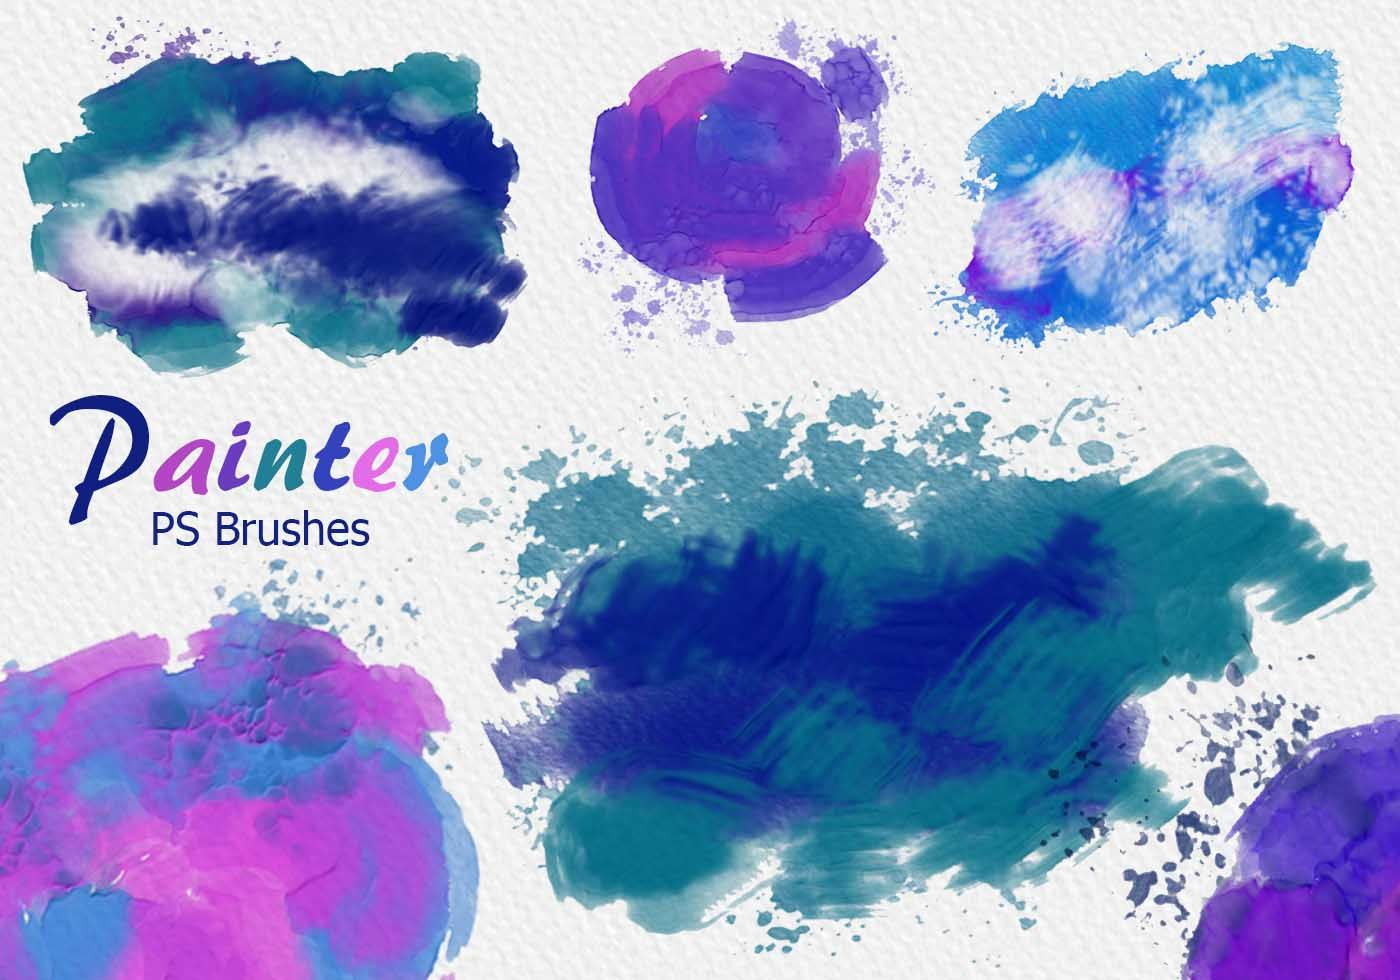 20 Painter Ps Brushes Abr High Res 2500px Vol 11 Ps Brushes